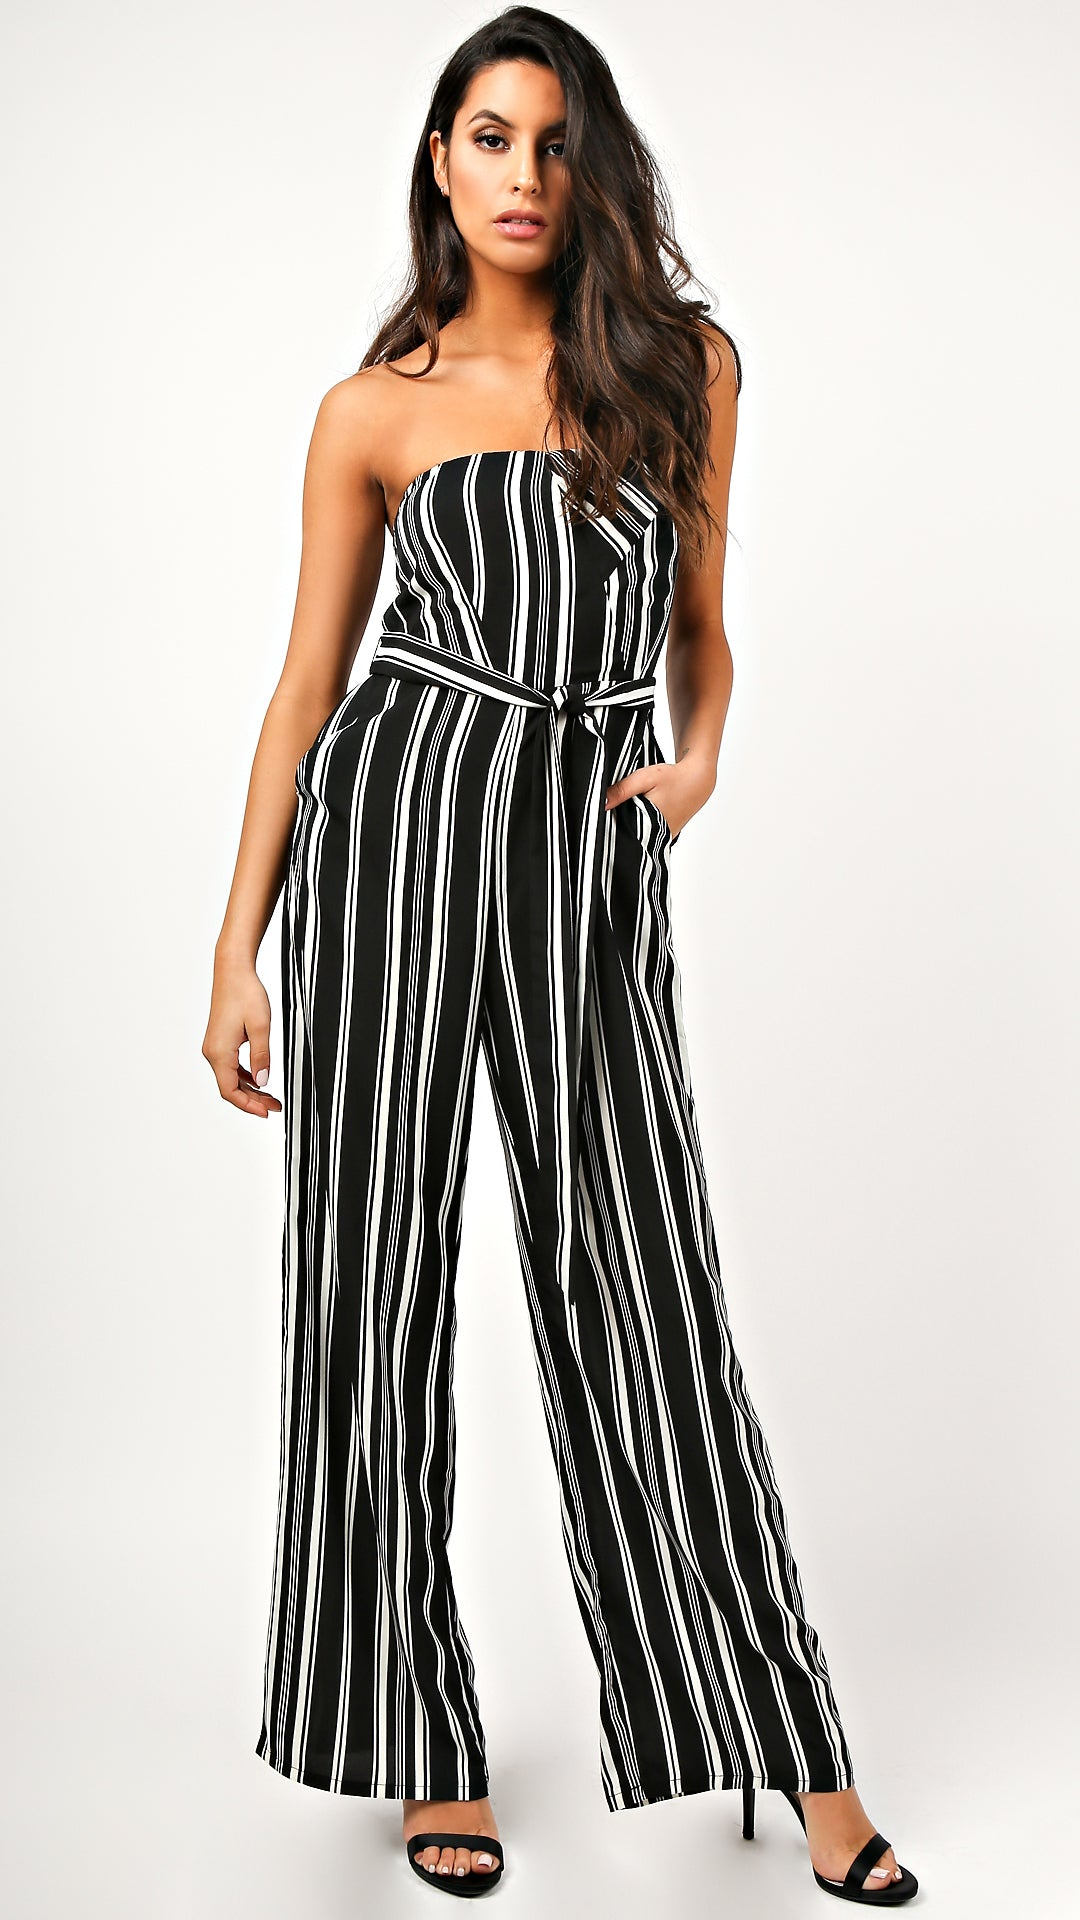 028d16381c Bella Striped Strapless Jumpsuit - ANGL